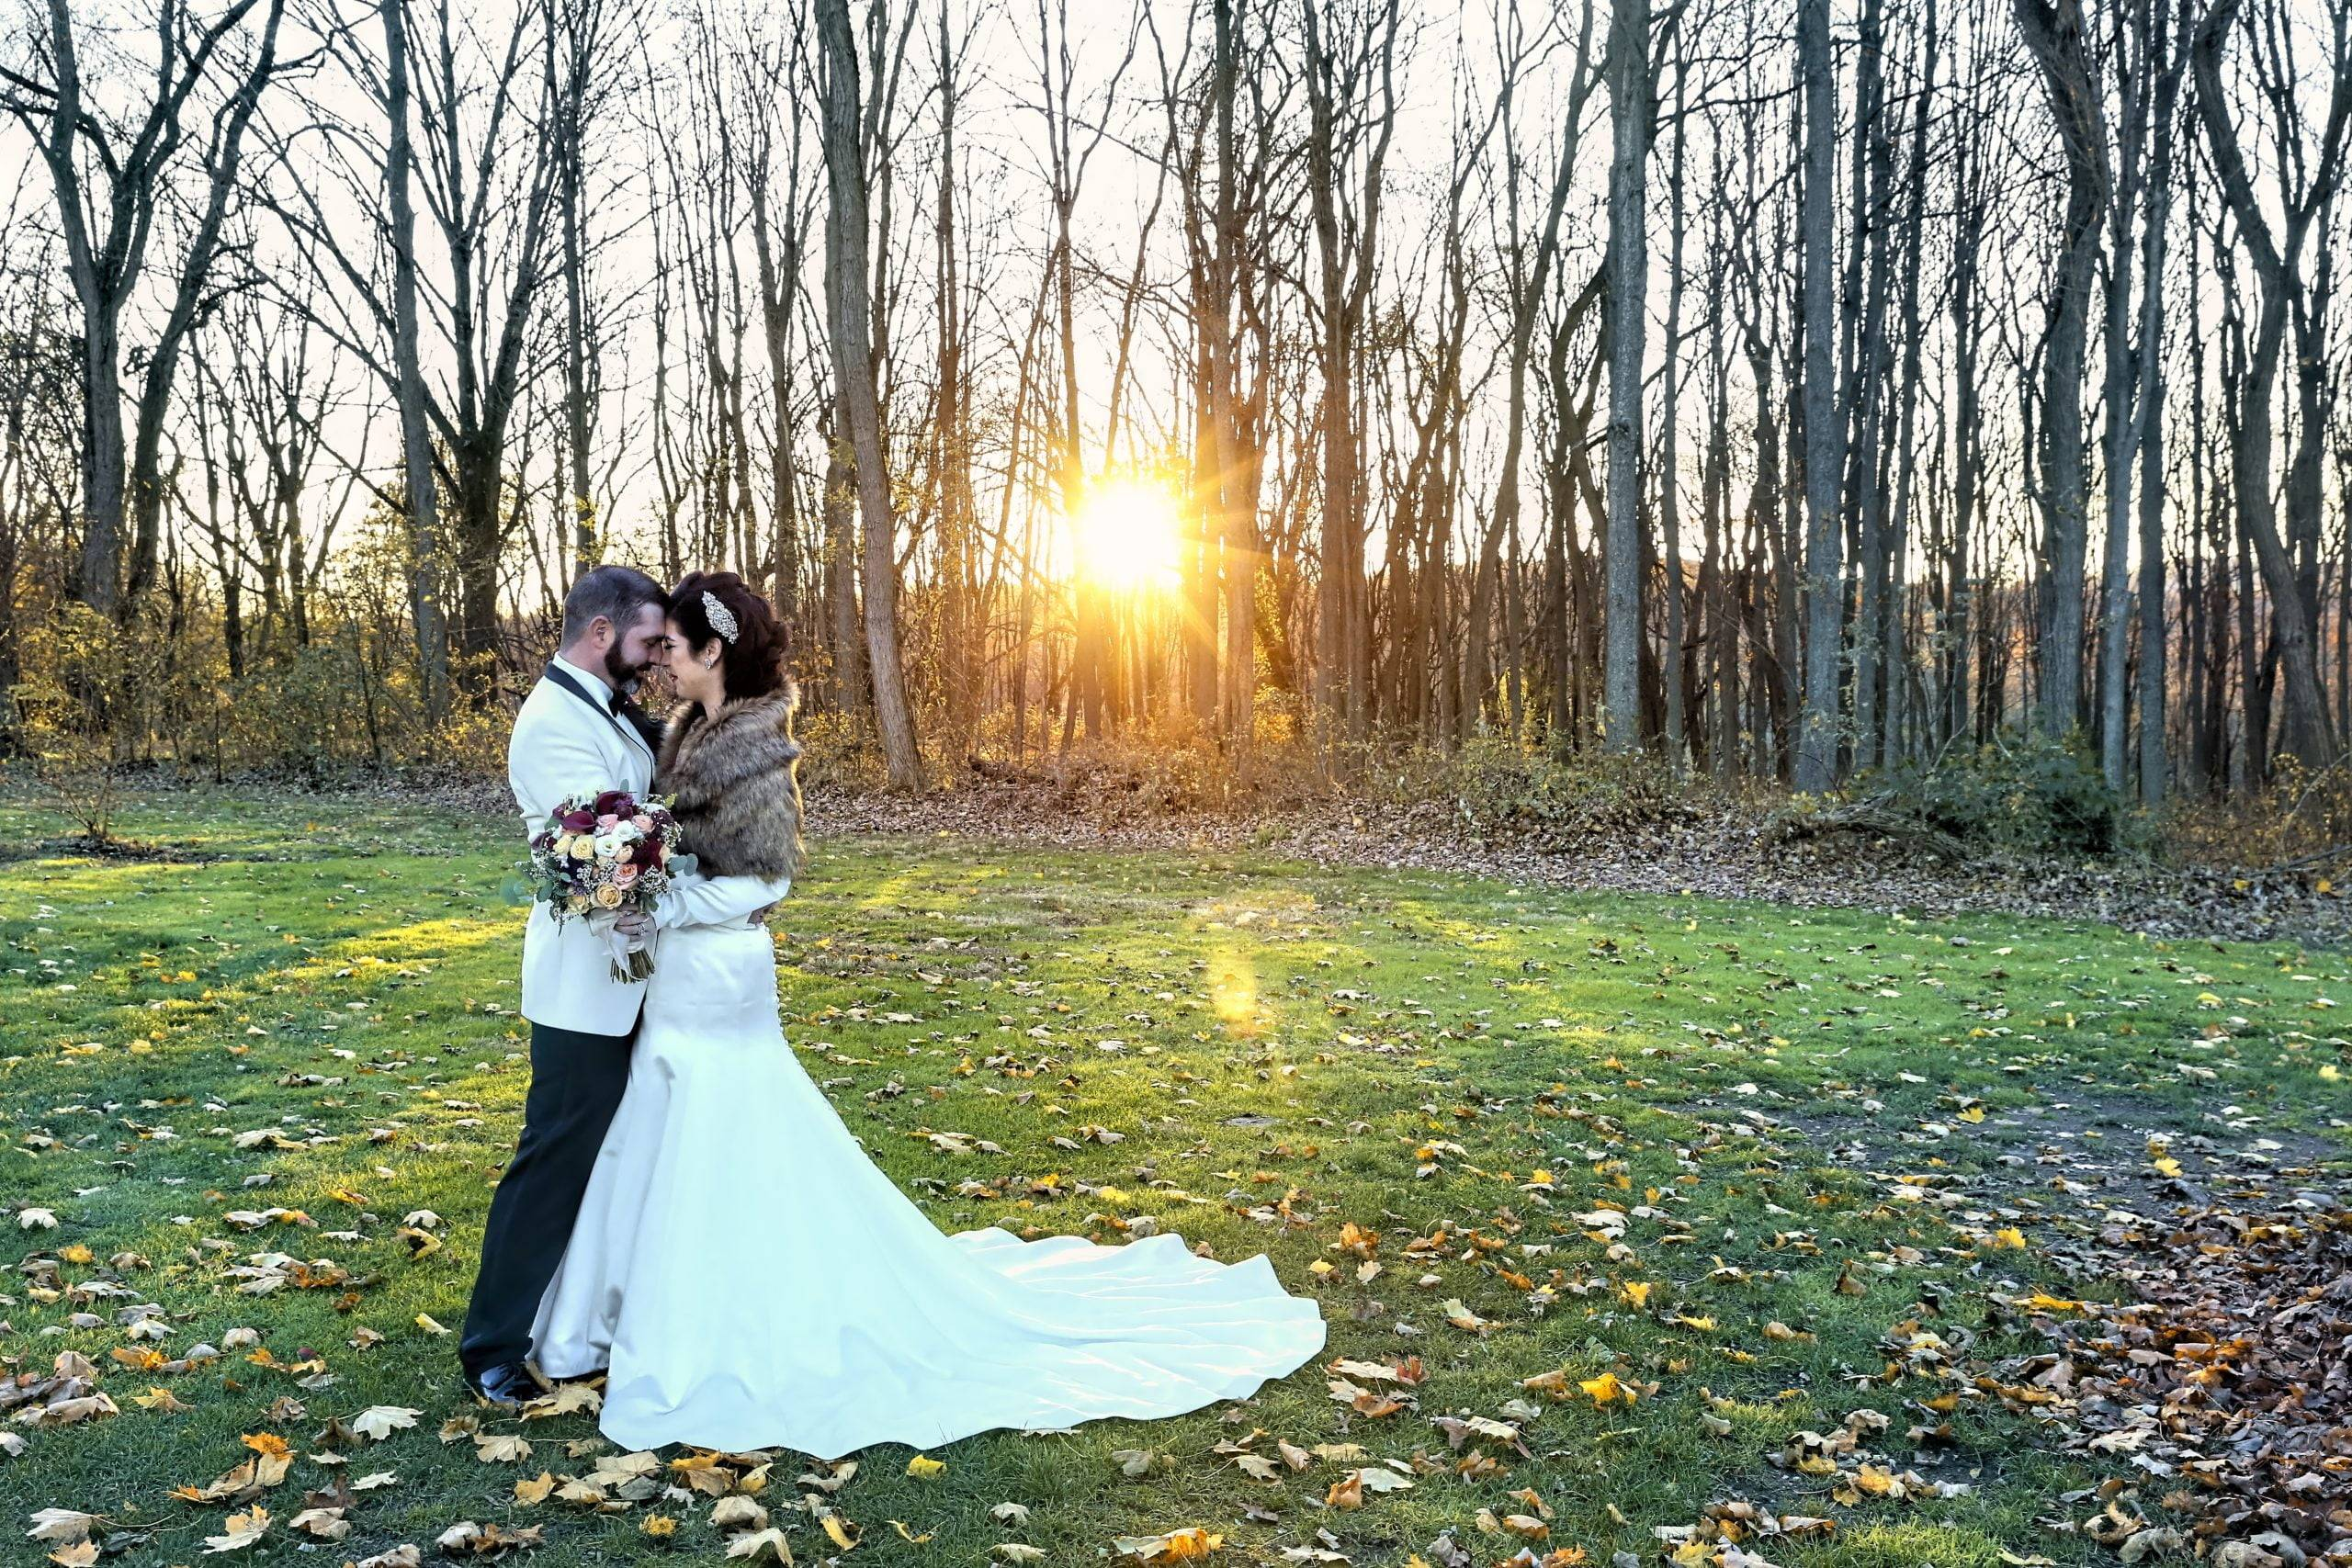 Basking Ridge CC bride and groom on lawn at sunset